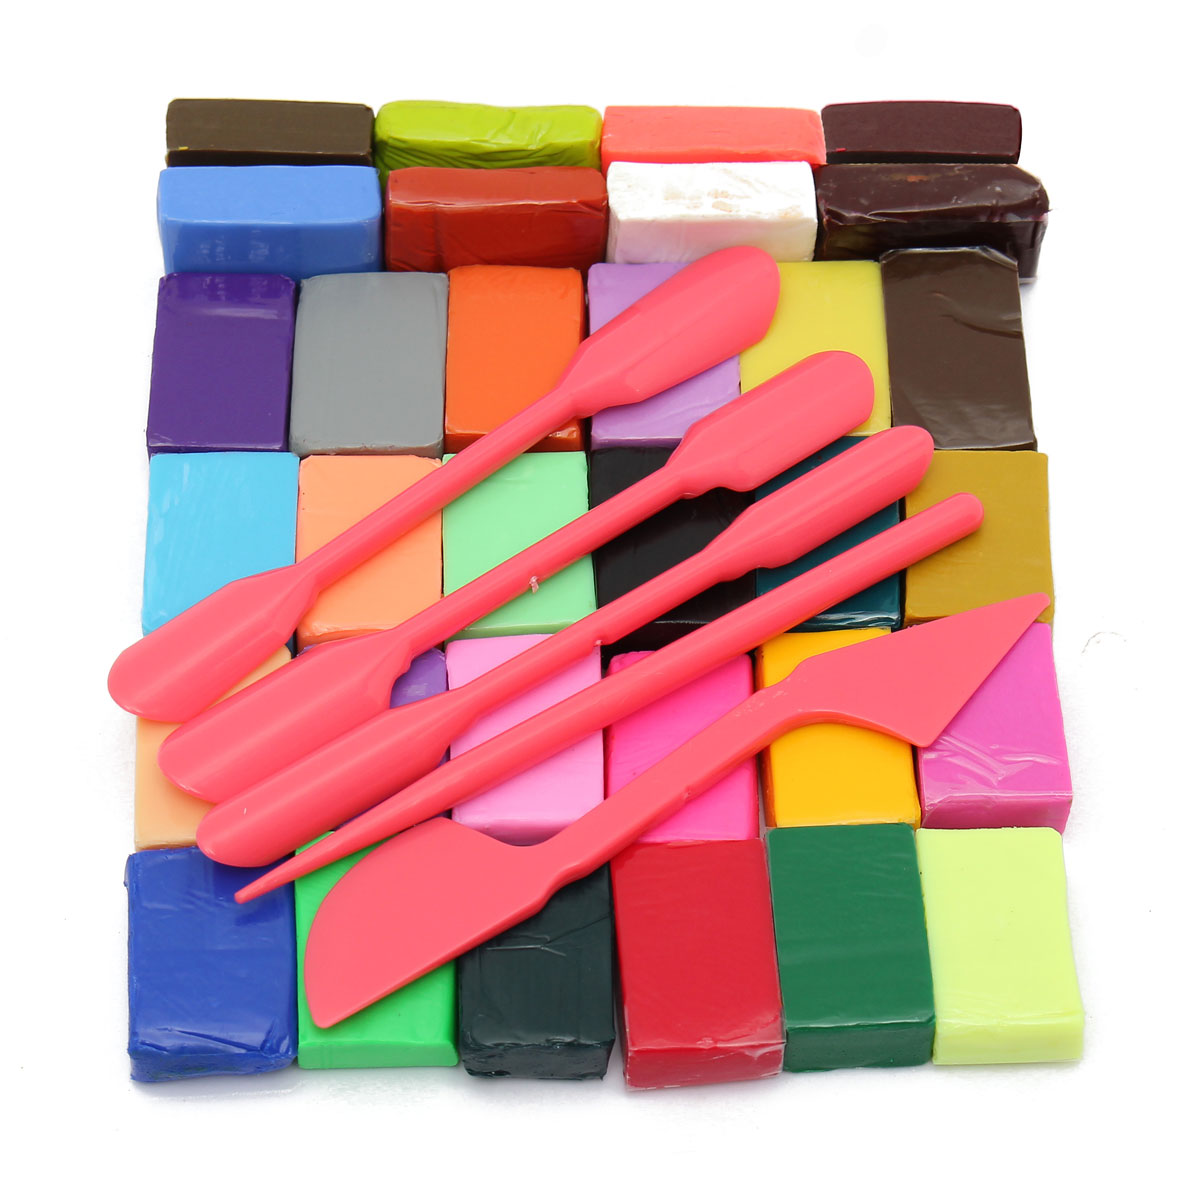 How to make clay toys use various shaping tools to - Wholesalediy 32 Color Oven Bake Polymer Clay Block Modelling Plasticine 5 Tool Hand Making Education Toy